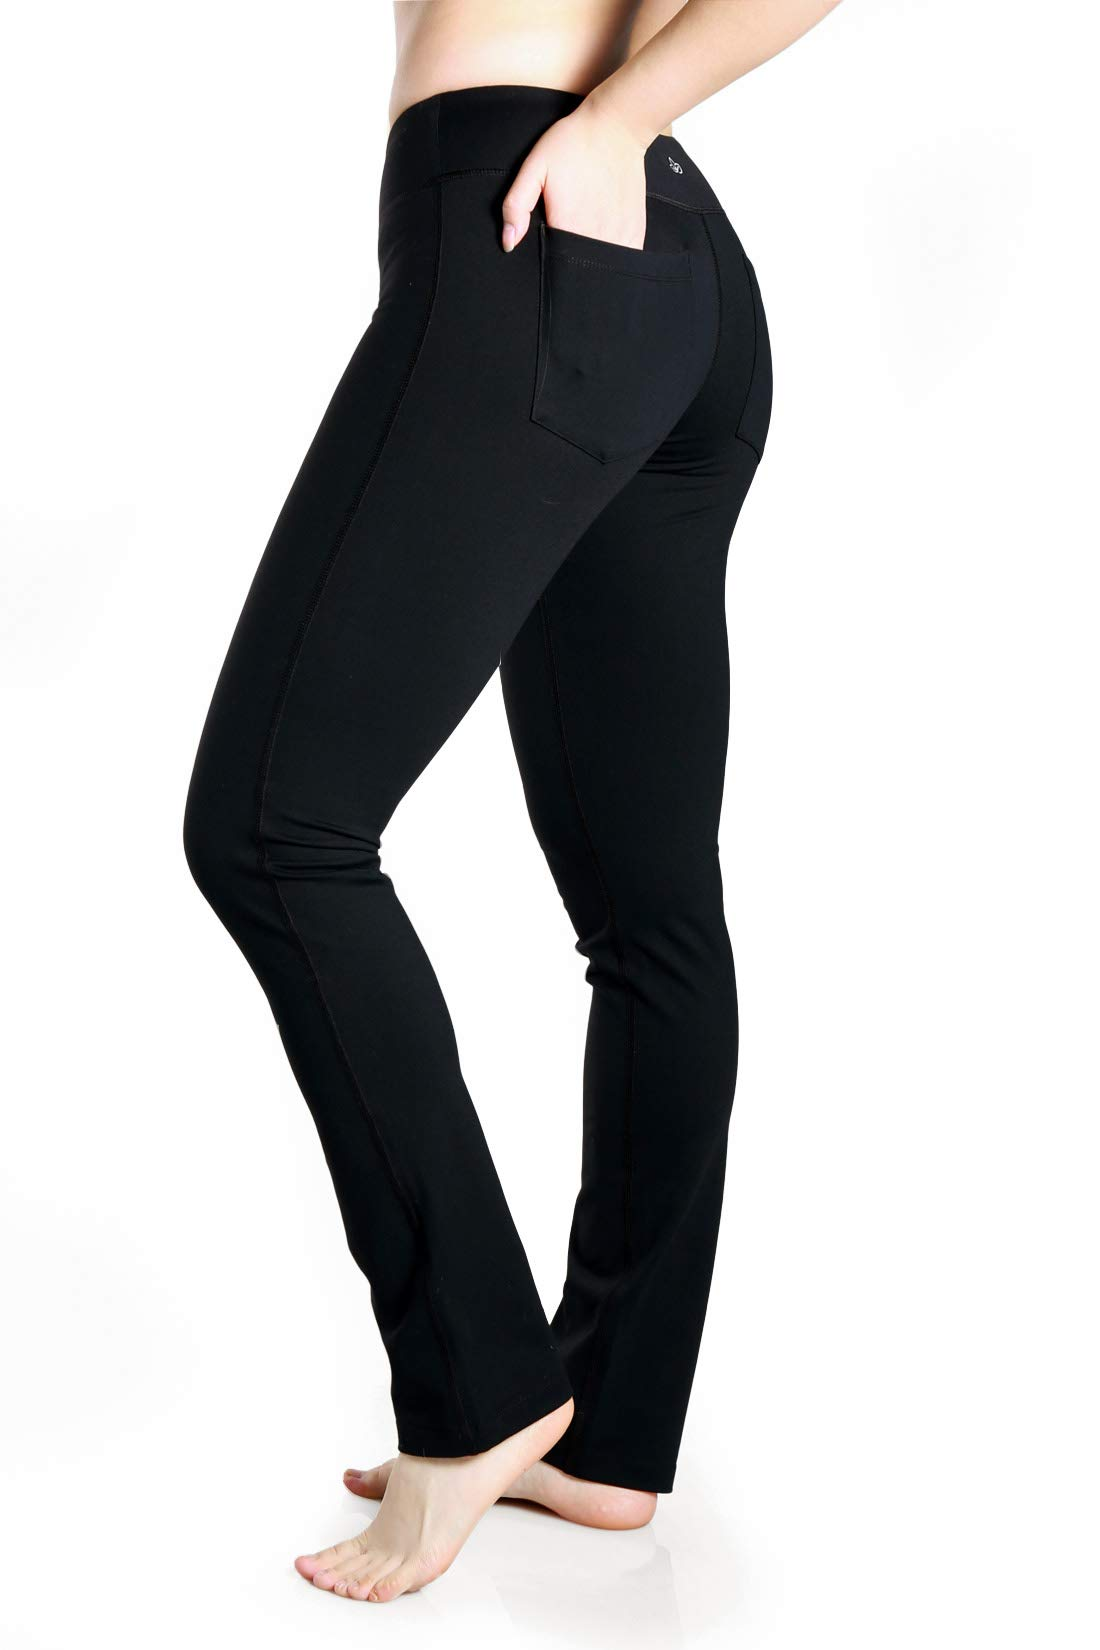 cdabed818d88f Best Rated in Women's Yoga Pants & Helpful Customer Reviews - Amazon.com